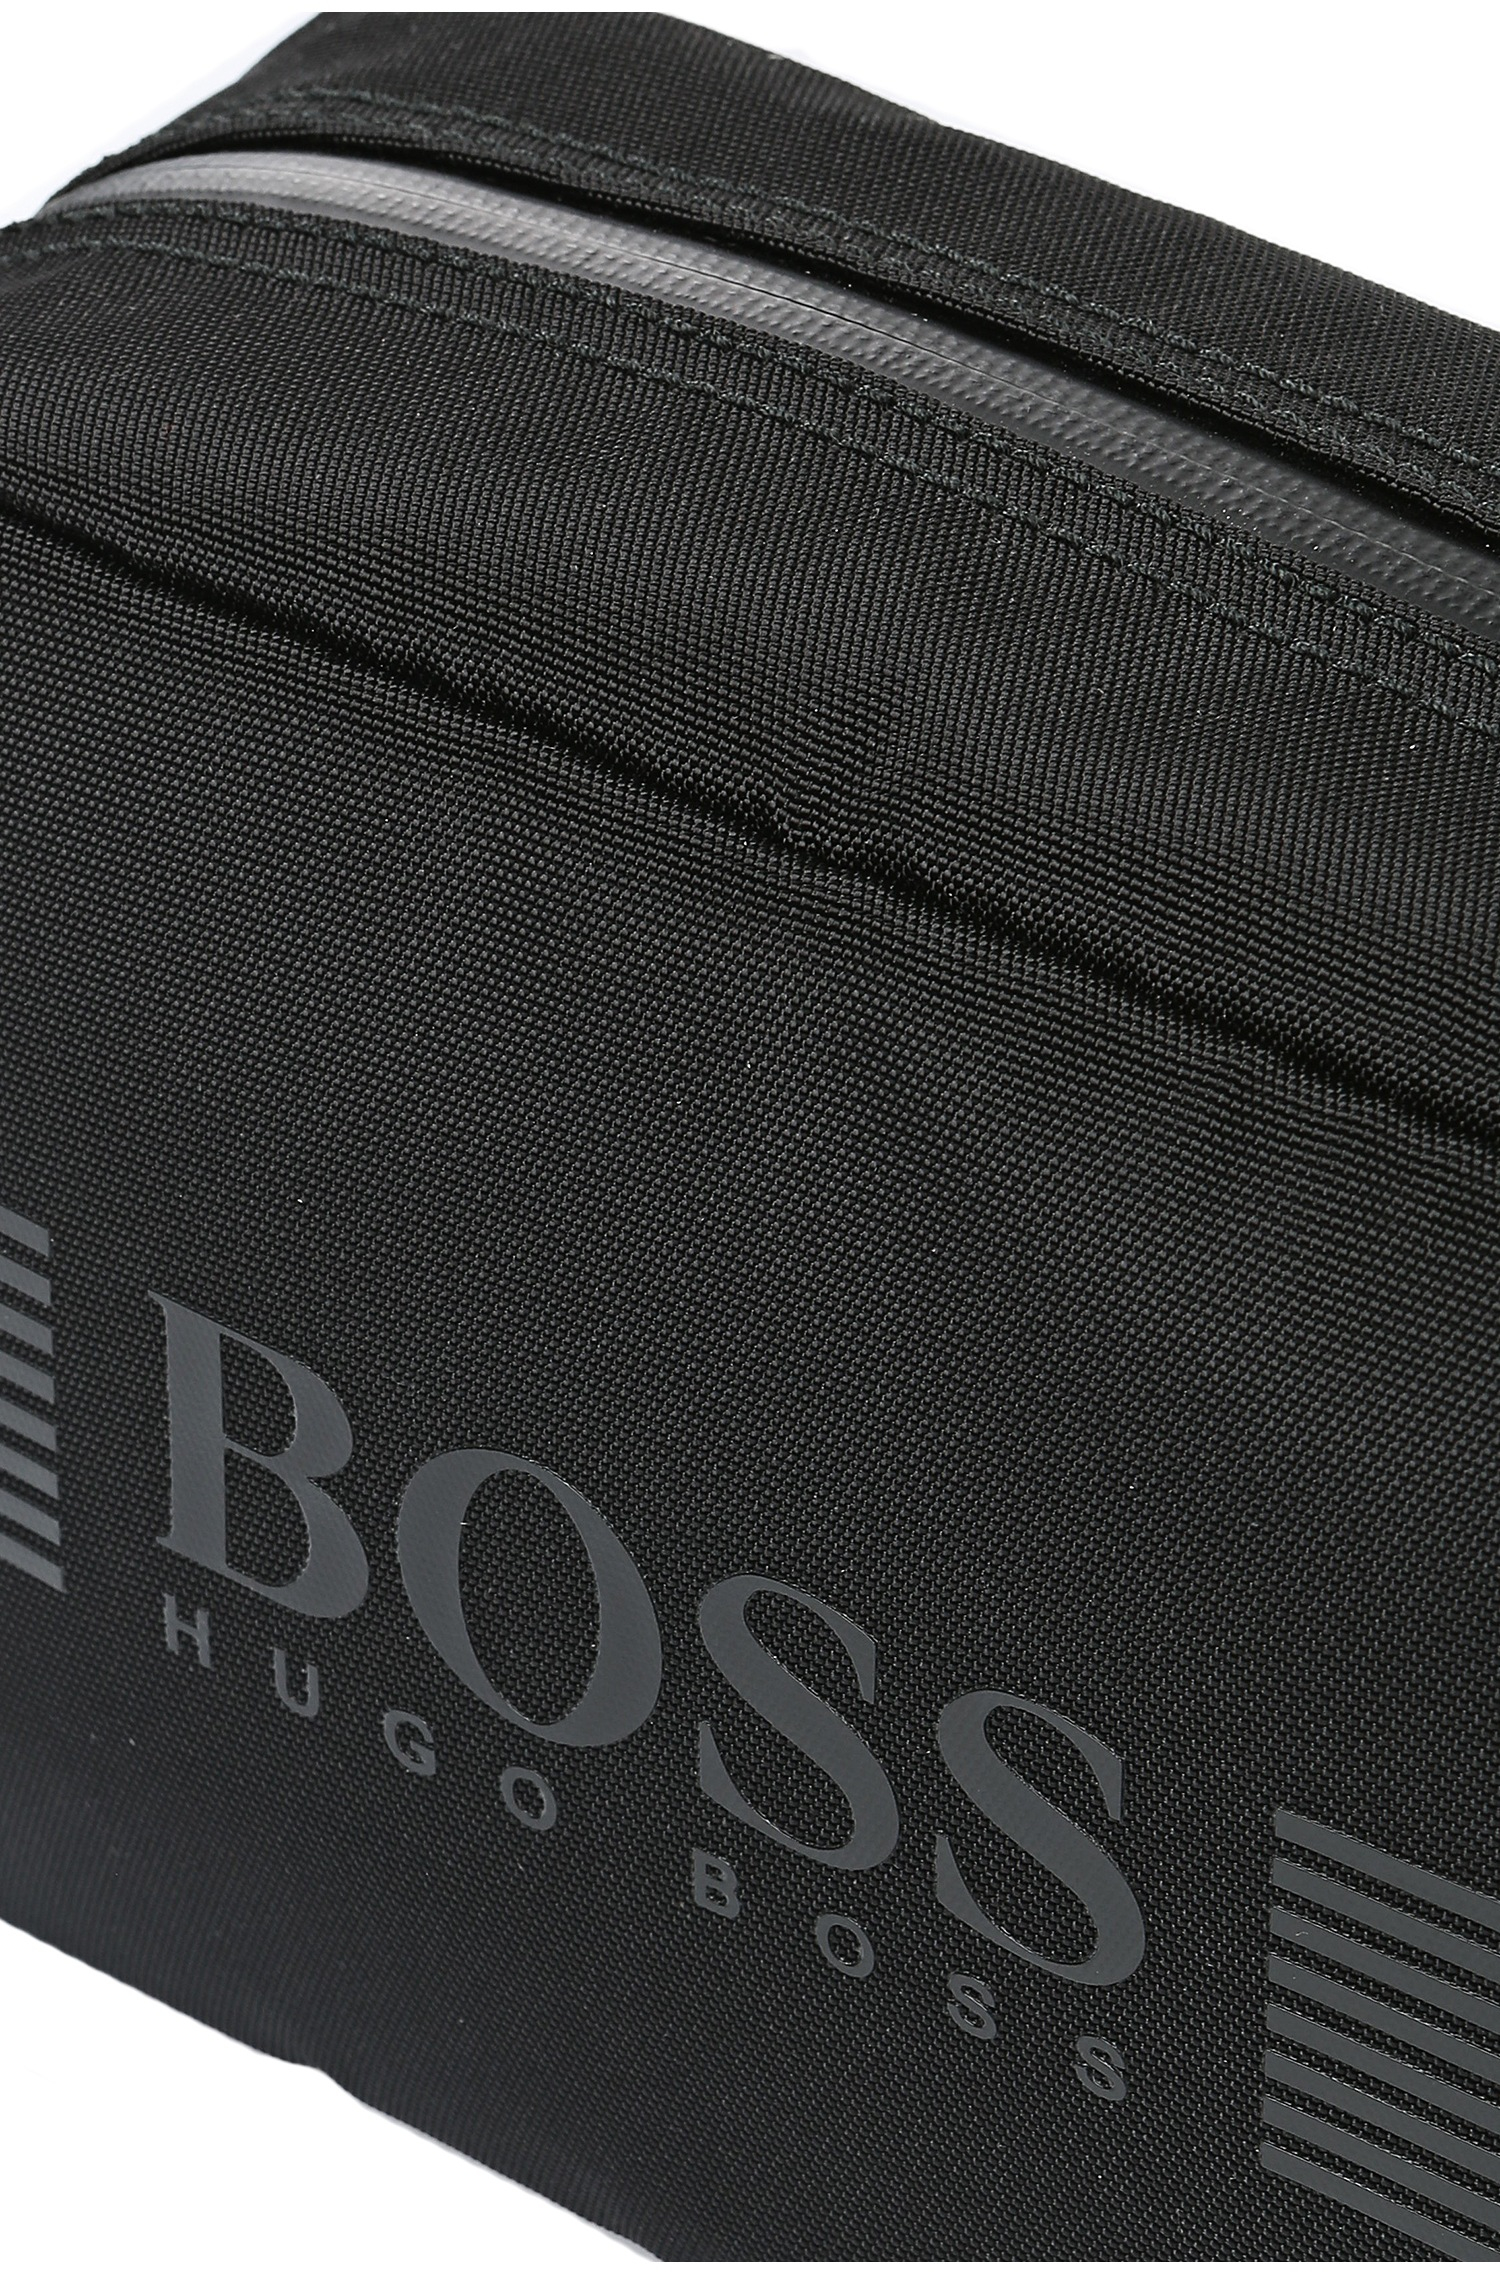 3e06d23bc6be BOSS Green Wash Bag In Nylon With Trim   pixel washbag  in Black for ...